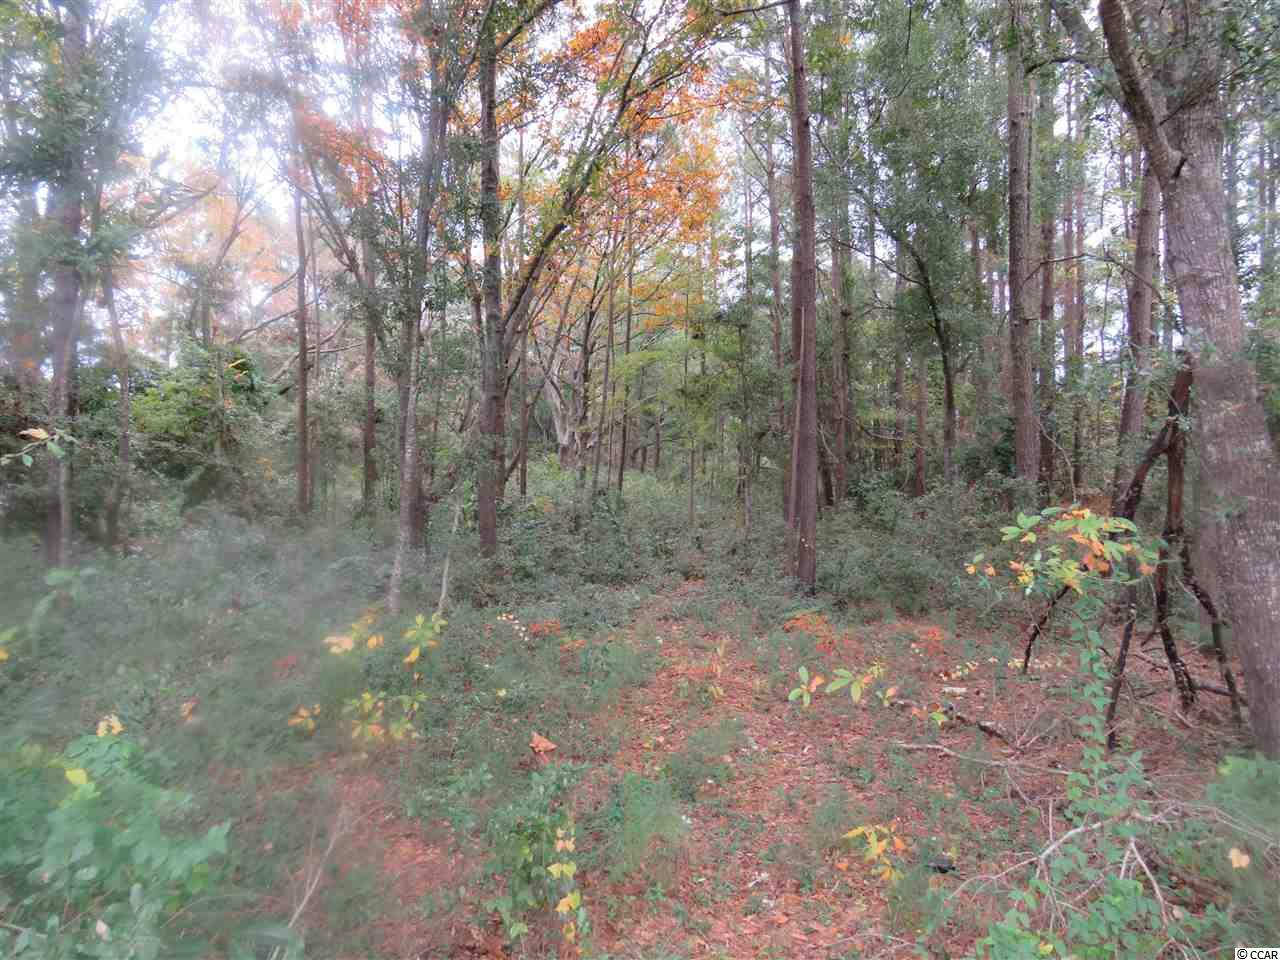 WHERE ELSE ARE YOU GOING TO GET 3 ACRES IN THE HEART OF LITTLE RIVER WITH FRONTAGE ON HWY. 17 AT THIS PRICE. GREAT LOCATION. ONLY 5 MINUTES FROM THE OCEAN IN THE GREAT GOLF AND FISHING TOWN OF LITTLE RIVER LOCATED ON THE NORTH END OF THE GRANDSTRAND,  THIS WOULD ALSO MAKE A GOOD BUY AND HOLD AS LITTLE RIVER GROWS THE VALUE WOULD GO UP.  CALL ME DIRECT OR CALL YOUR REALTOR TODAY, THIS WON'T LAST AT THIS PRICE!!! PLUS OWNER SAYS BRING ALL OFFERS!!